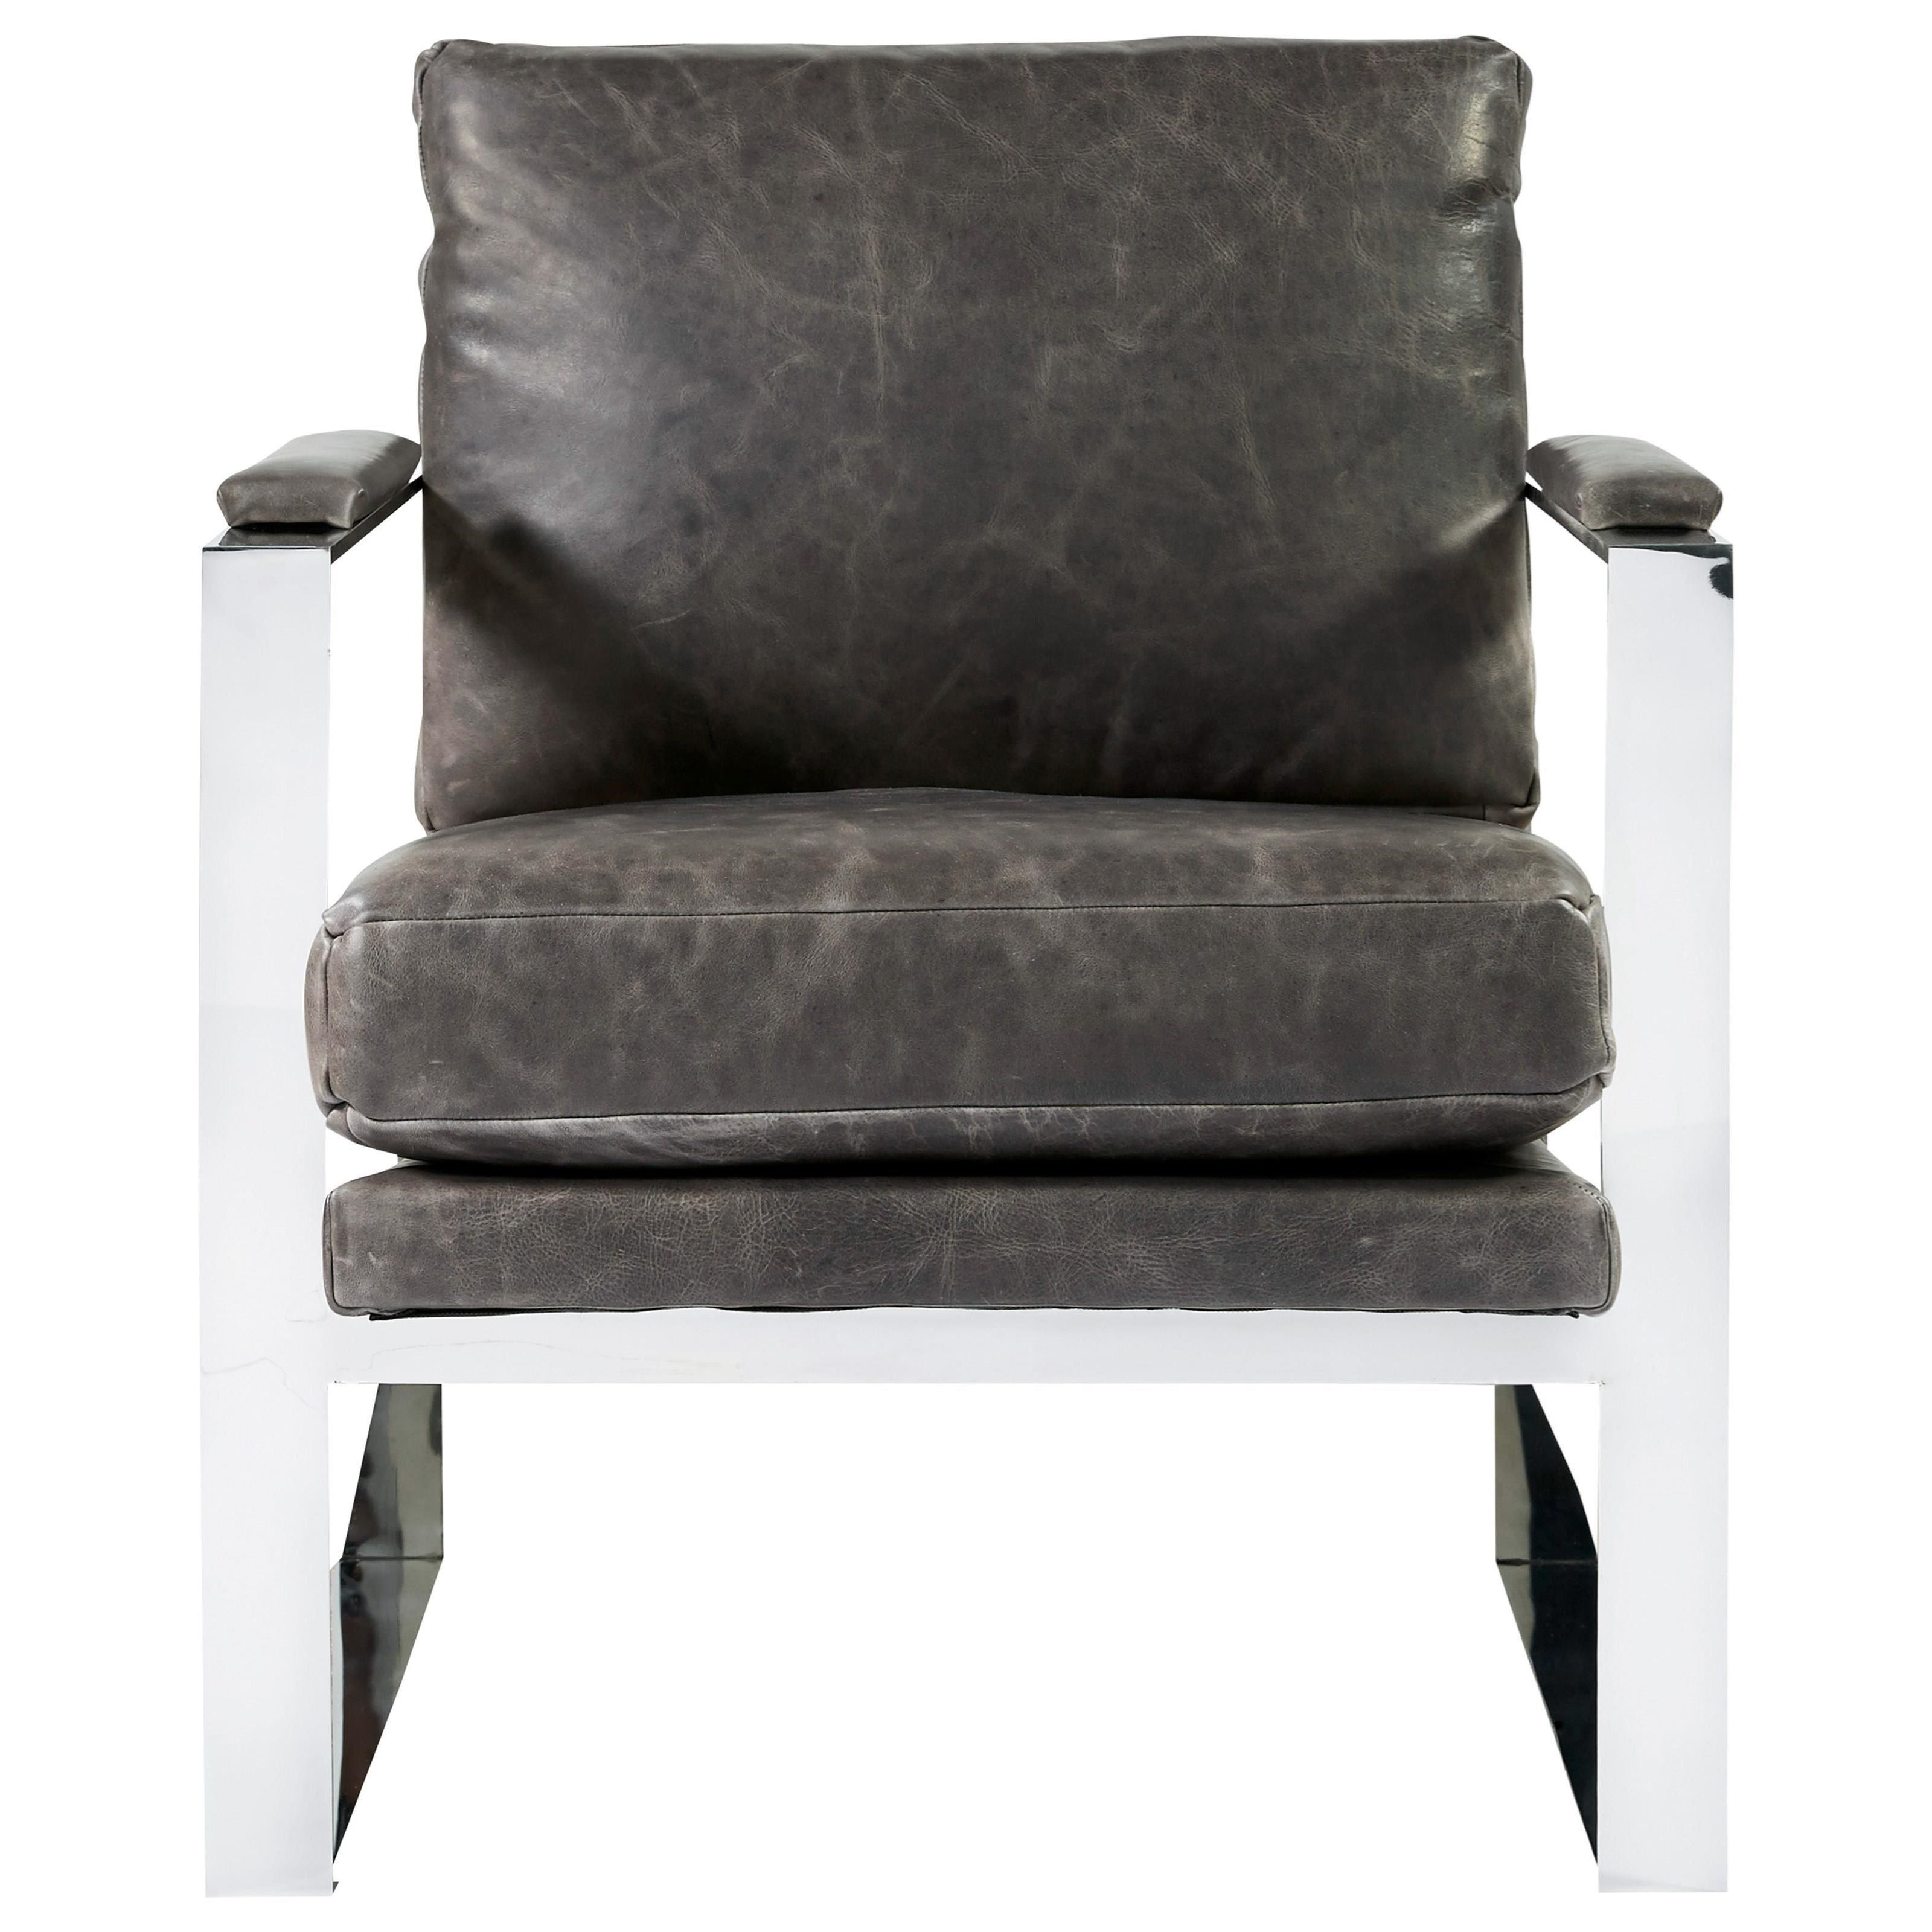 Accents Corbin Accent Chair by Universal at Dream Home Interiors